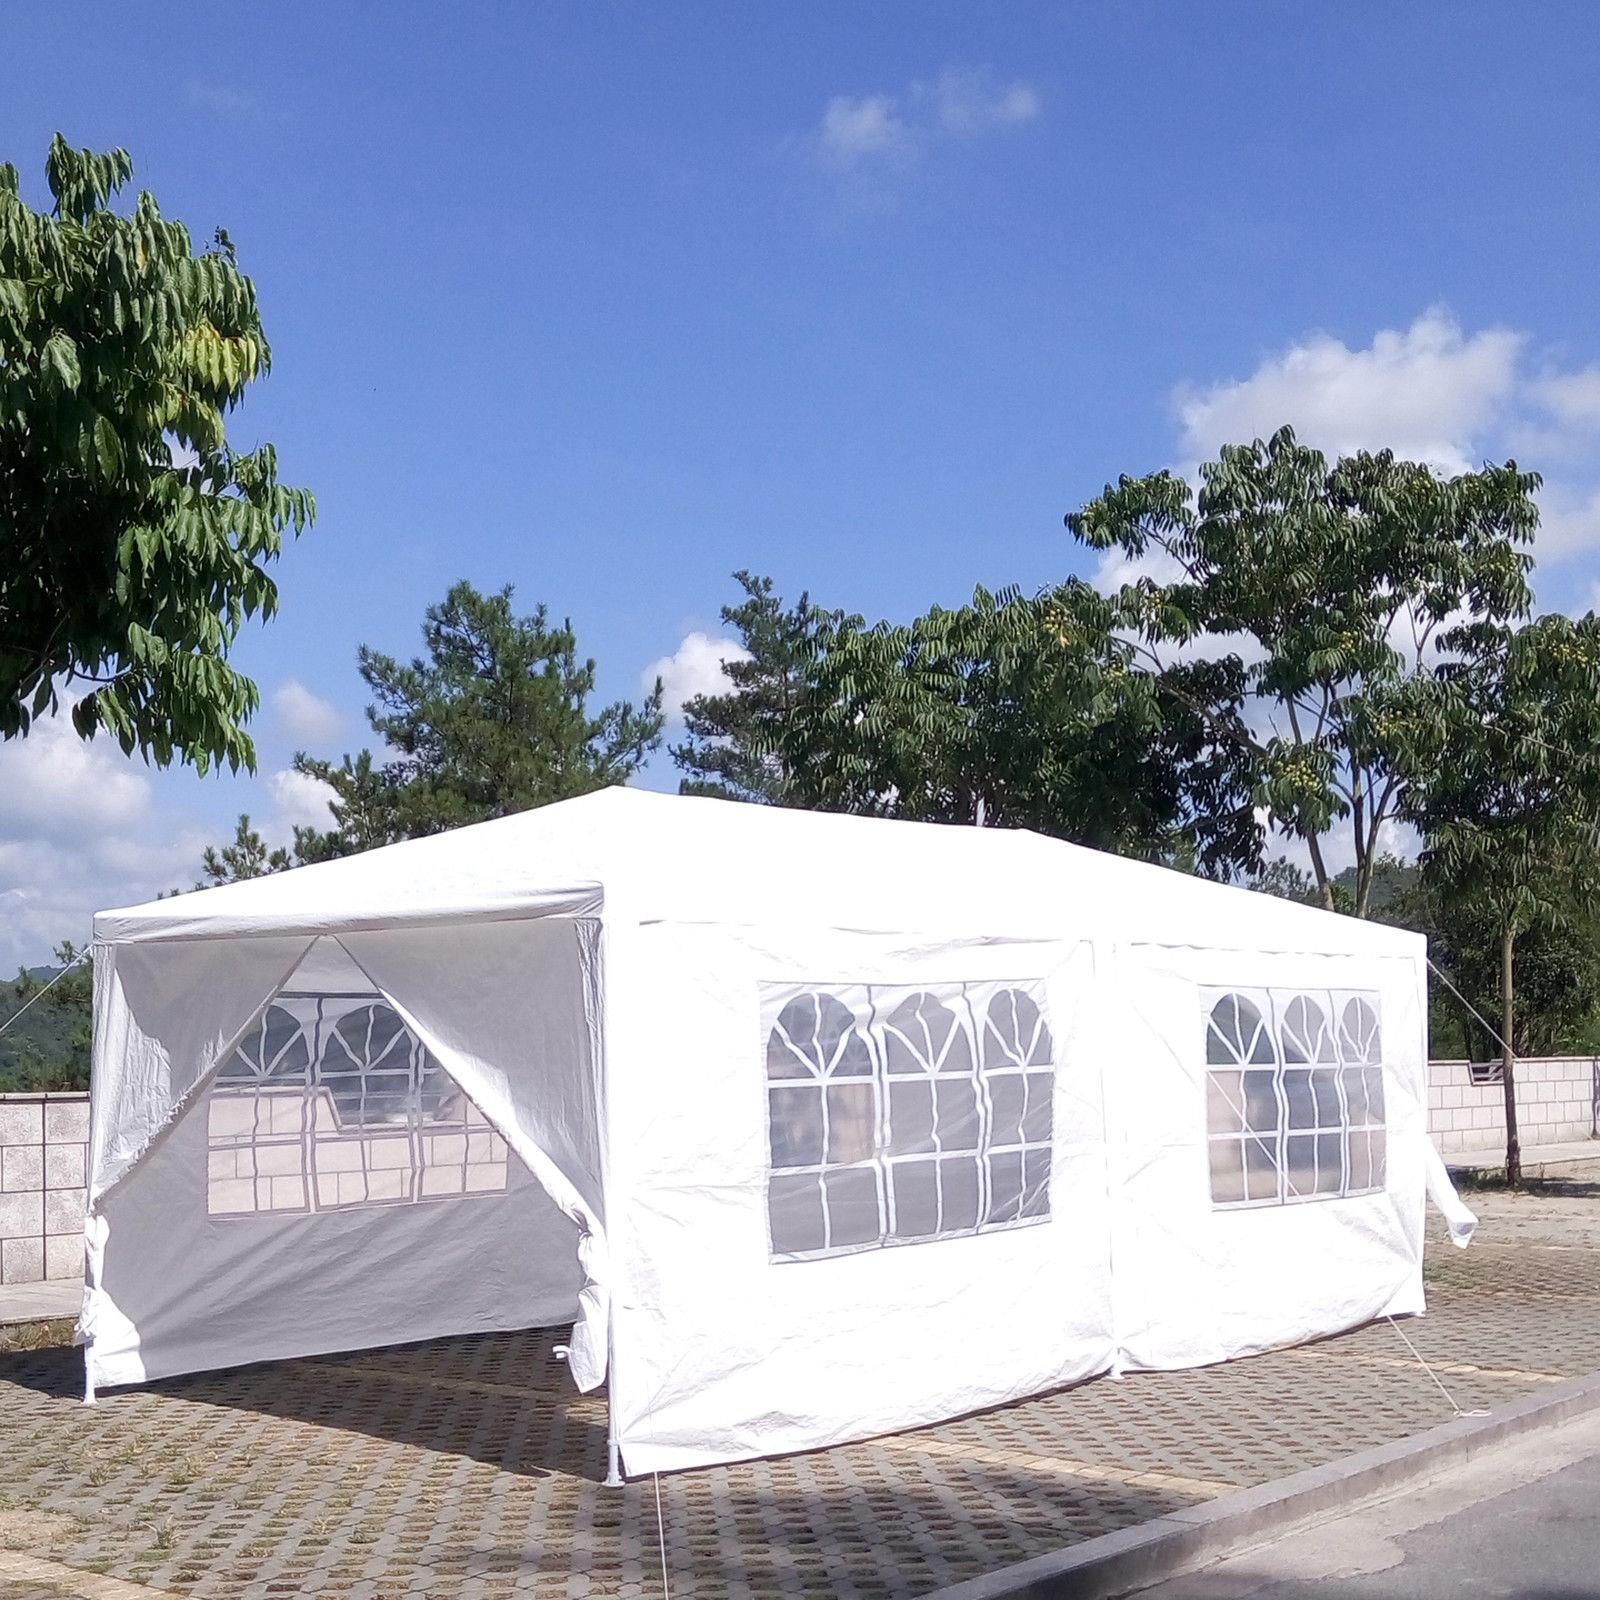 Ktaxon Outdoor 10'x20'Canopy Party Wedding Tent Heavy Duty Gazebo Pavilion Cater Events w/6 or 4 Side Walls